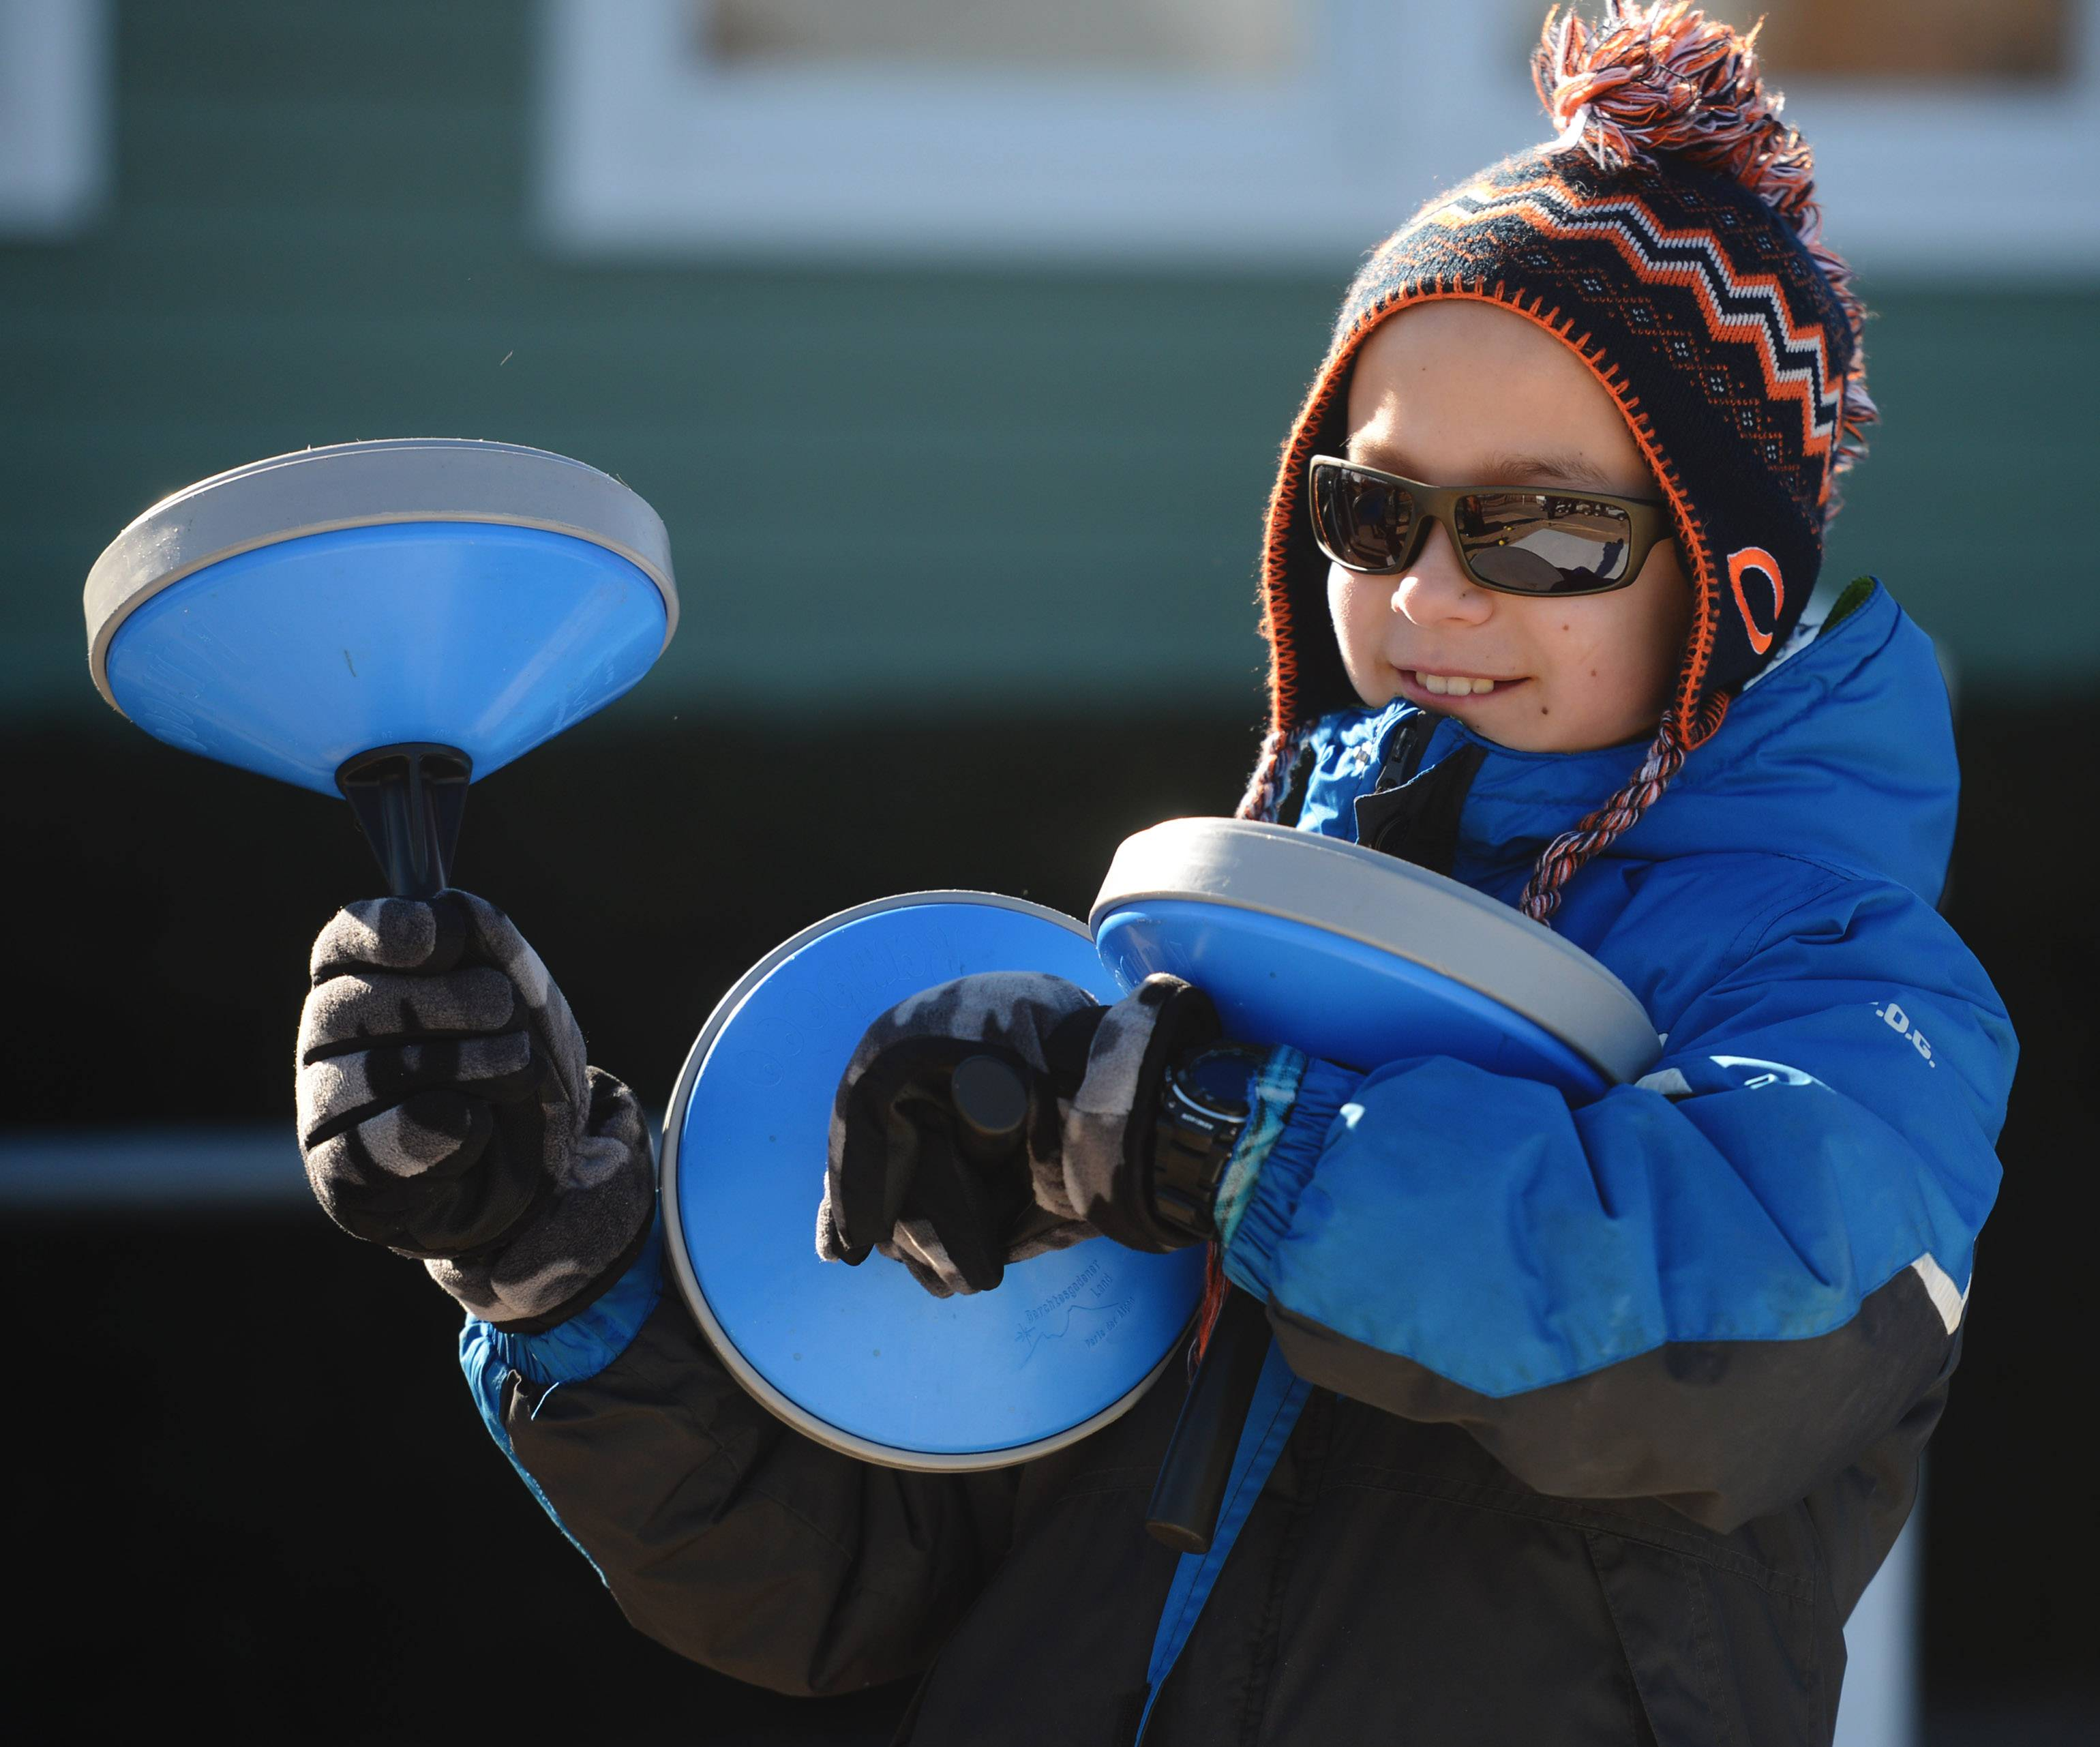 Zachary Kowalski, 11, of Gurnee gets ready for another curling match during Frosty Fest at Bittersweet Golf Club in Gurnee Saturday.